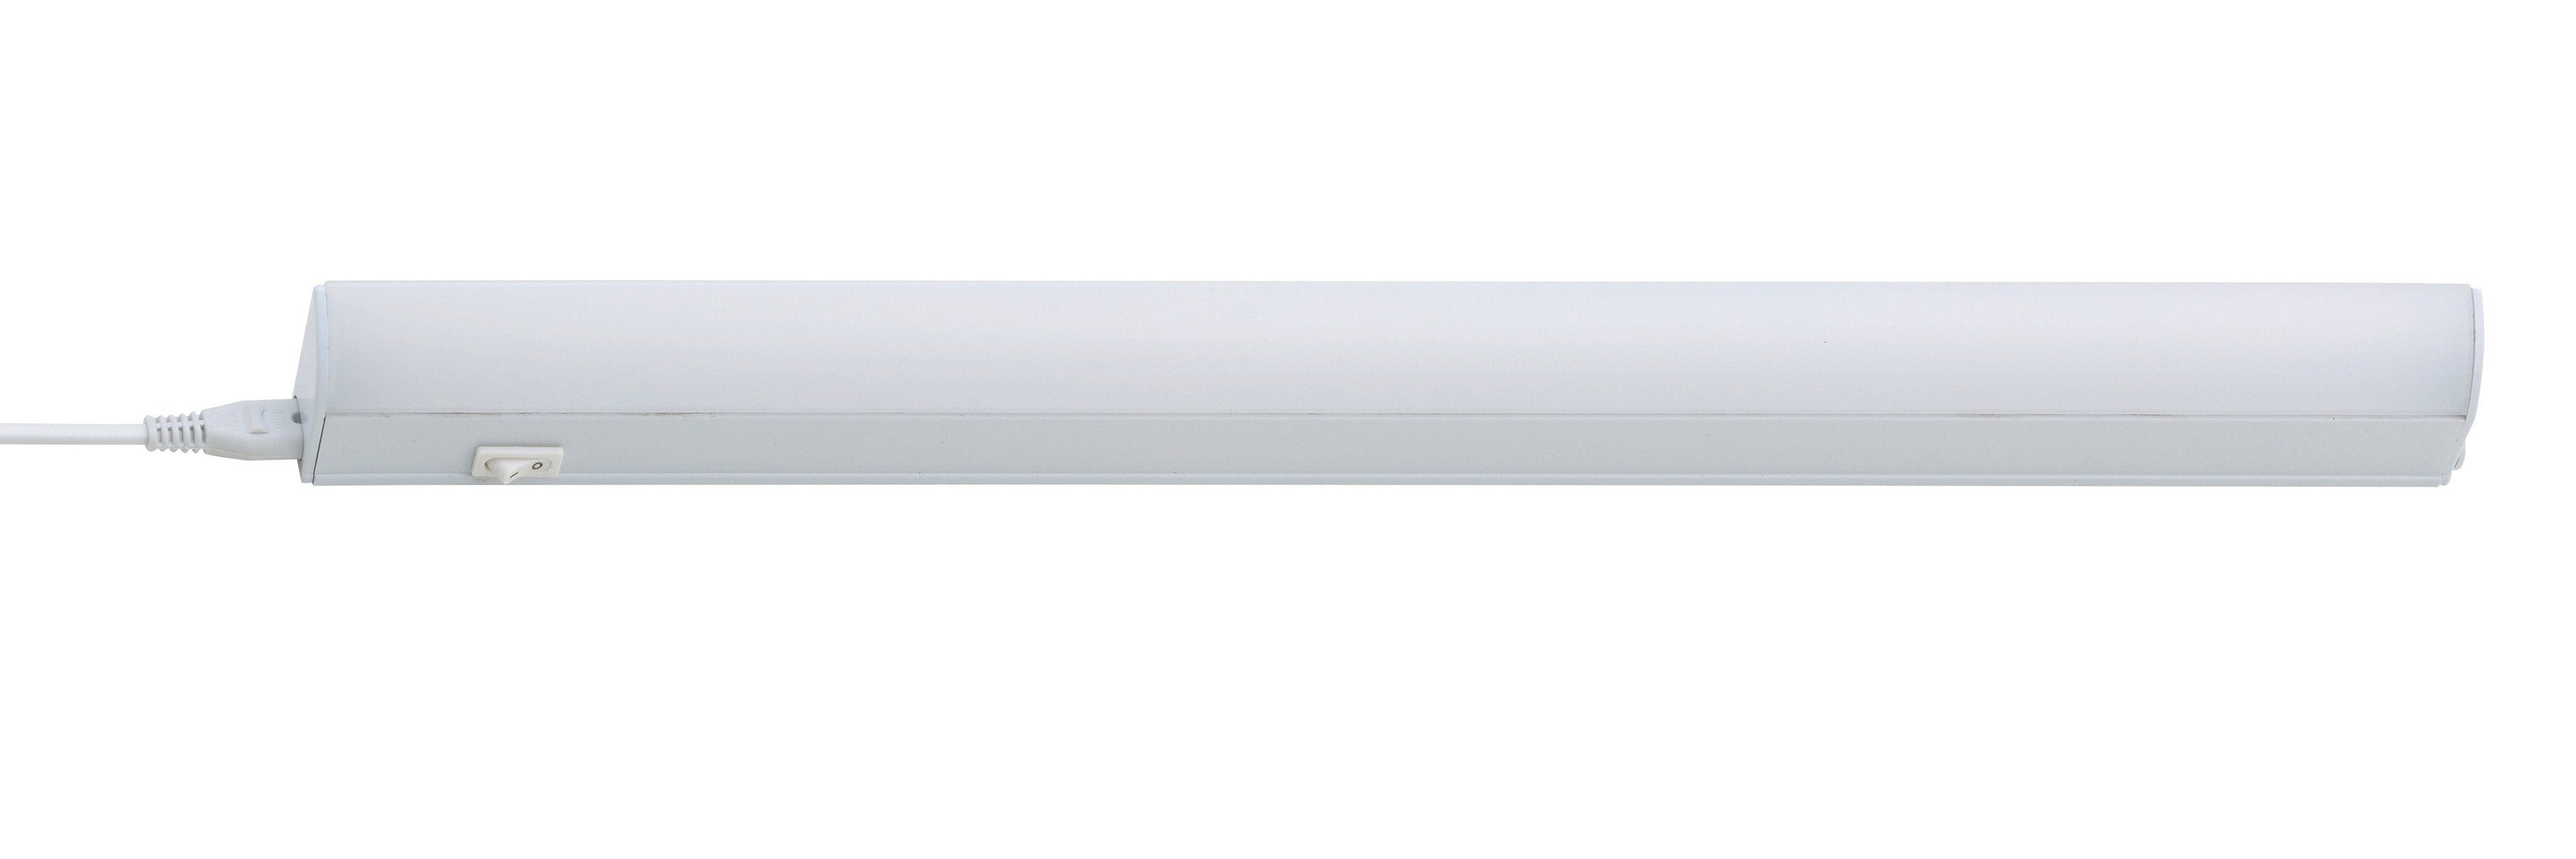 Briloner LED Unterbauleuchte »Cook & Light«, 8,9W